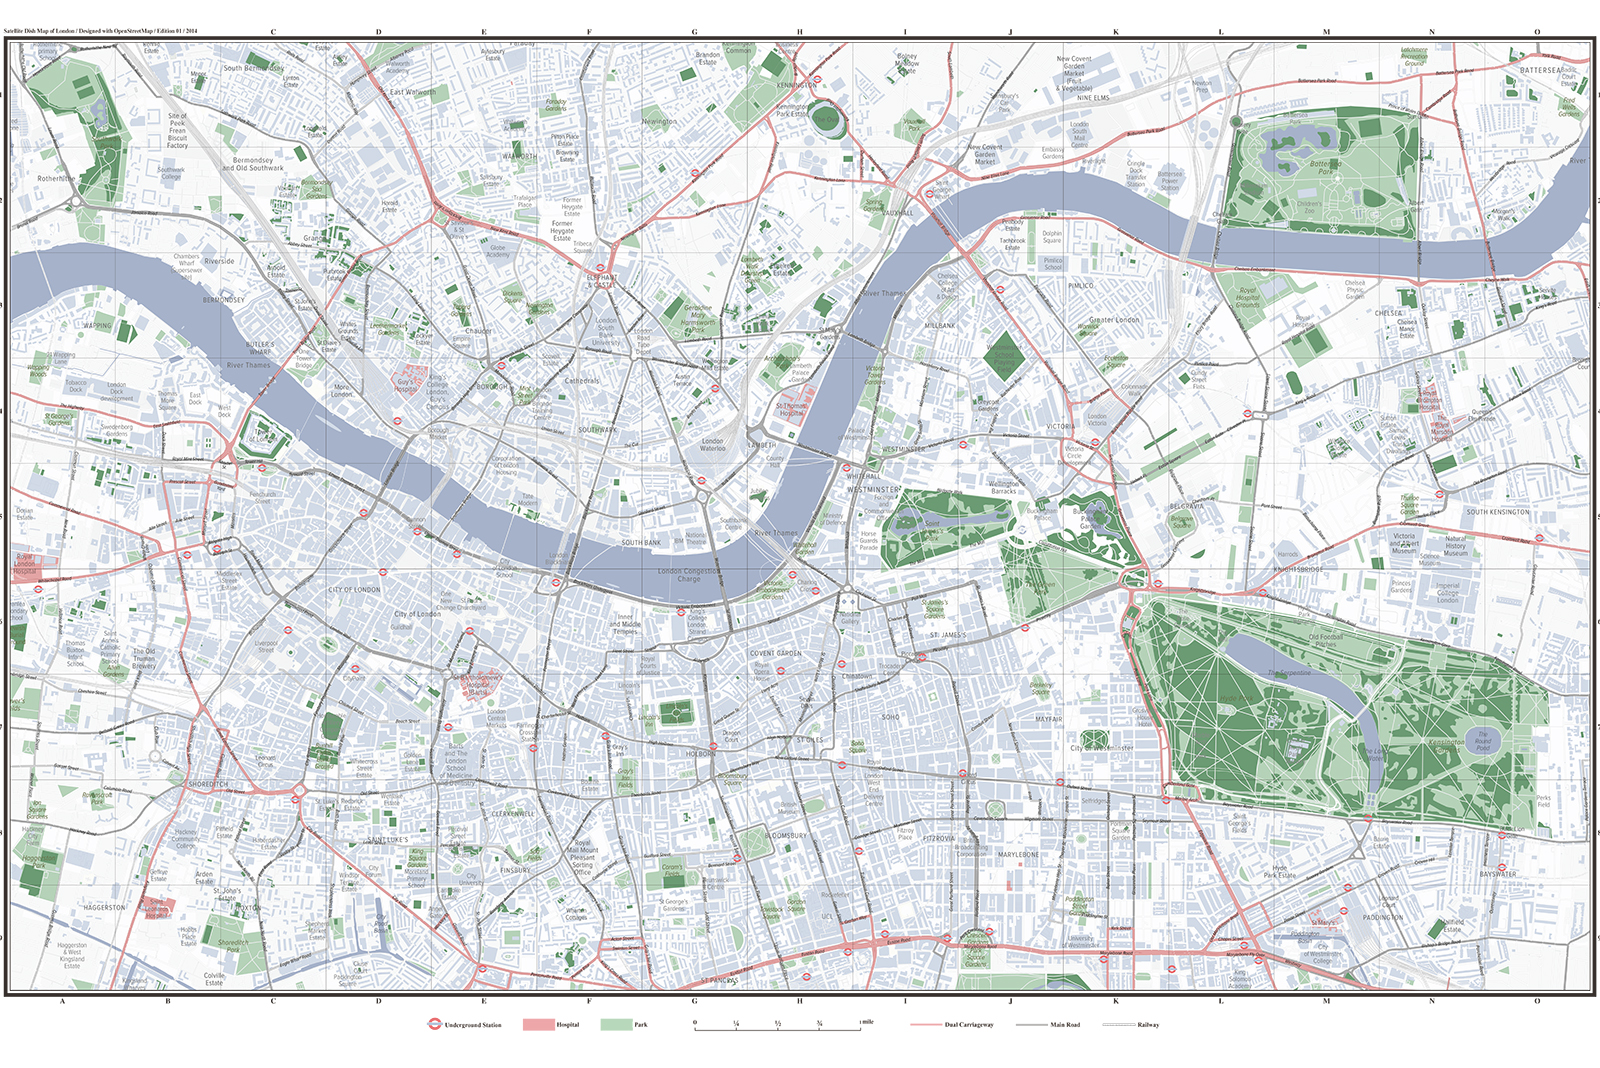 Satellite Map of London - A map for navigating with satellite dishes